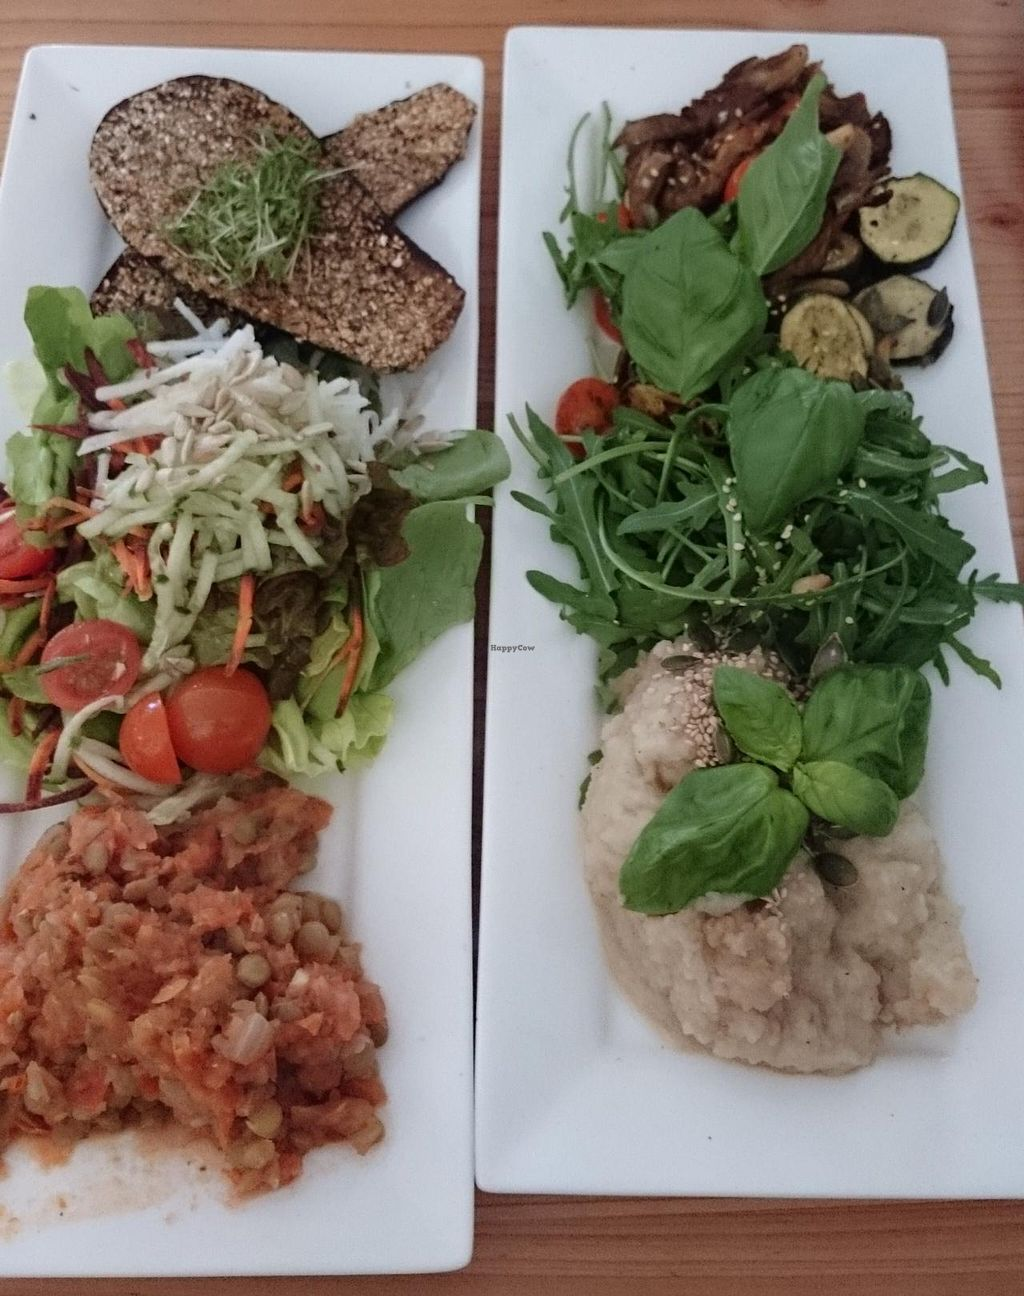 """Photo of GYS  by <a href=""""/members/profile/v_mdj"""">v_mdj</a> <br/>Diner with aubergineschnitzel <br/> May 9, 2015  - <a href='/contact/abuse/image/53767/101718'>Report</a>"""